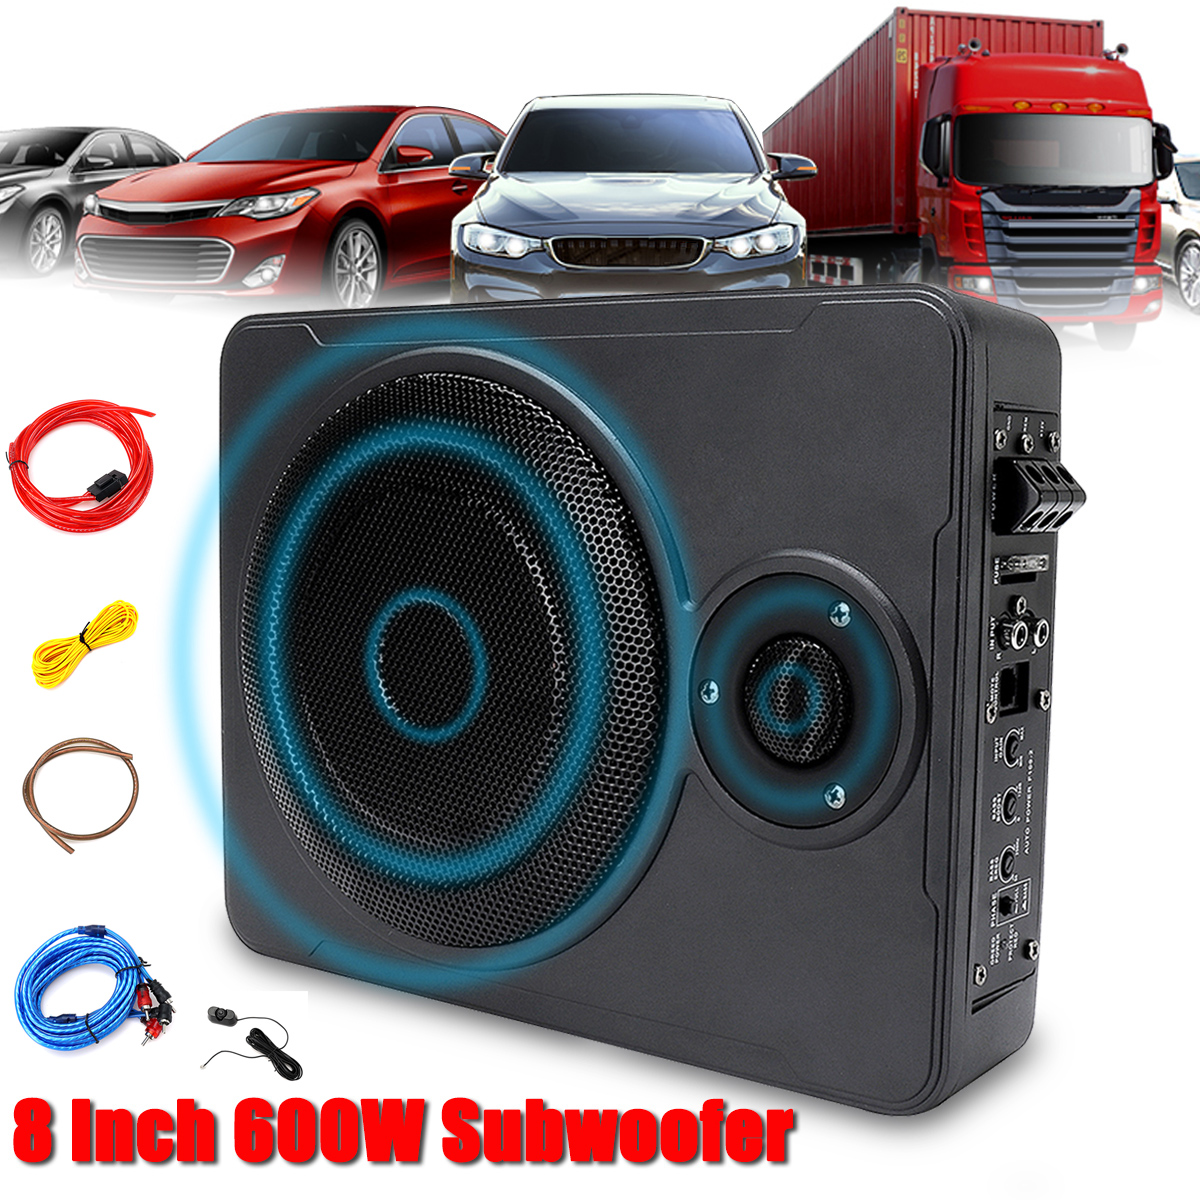 New Universal 8 Inch 600W bluetooth <font><b>Car</b></font> Ultra-Thin <font><b>Audio</b></font> Active Subwoofer Auto Under Seat Sub Amplifier <font><b>Car</b></font> <font><b>Audio</b></font> <font><b>Speaker</b></font> System image